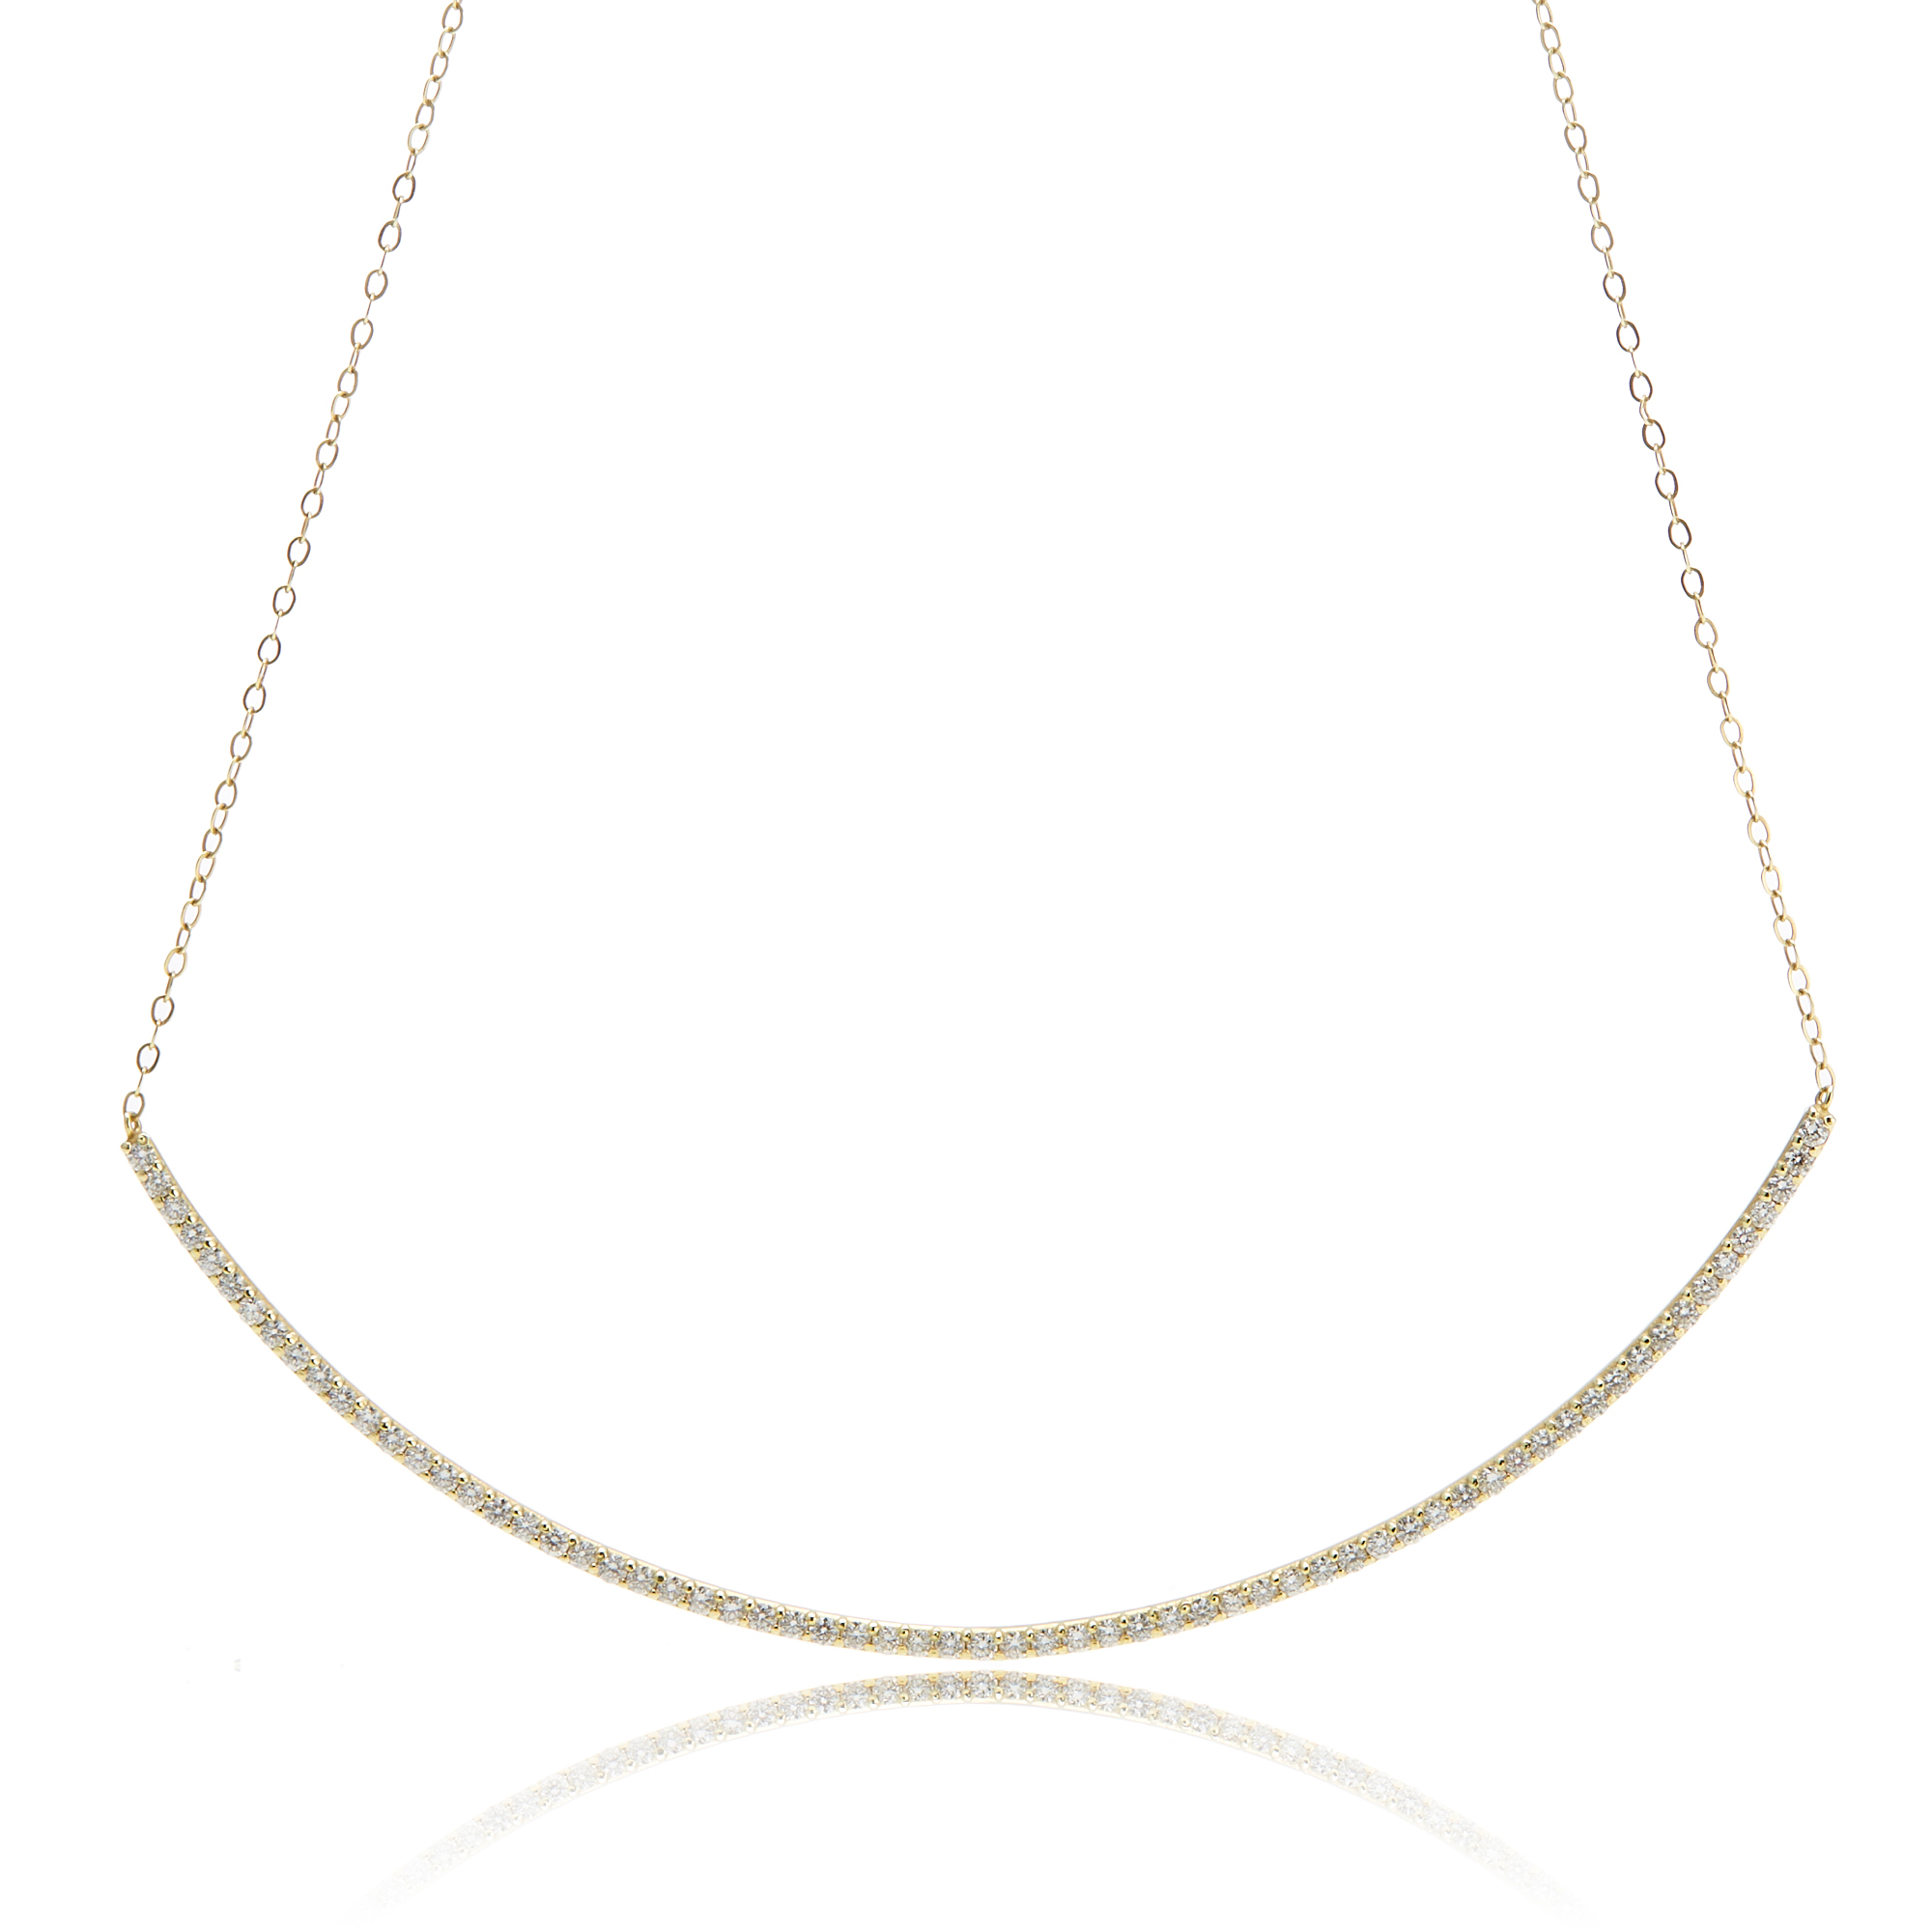 ILA Selma Diamond Crescent Necklace